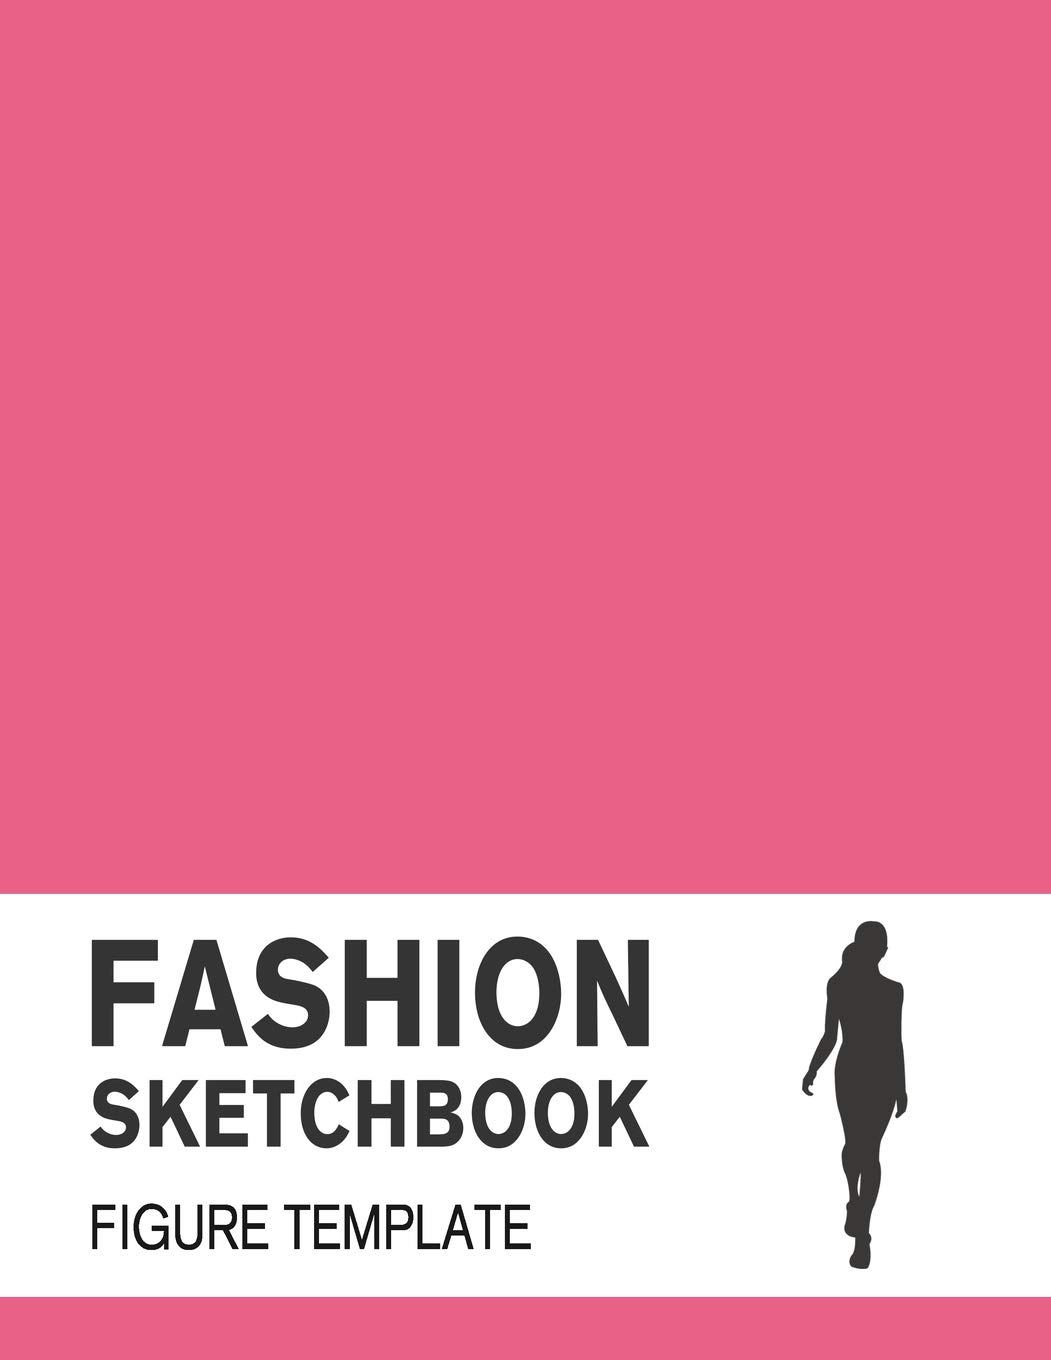 Fashion Sketchbook Figure Template Fashion Sketchpad With Lightly